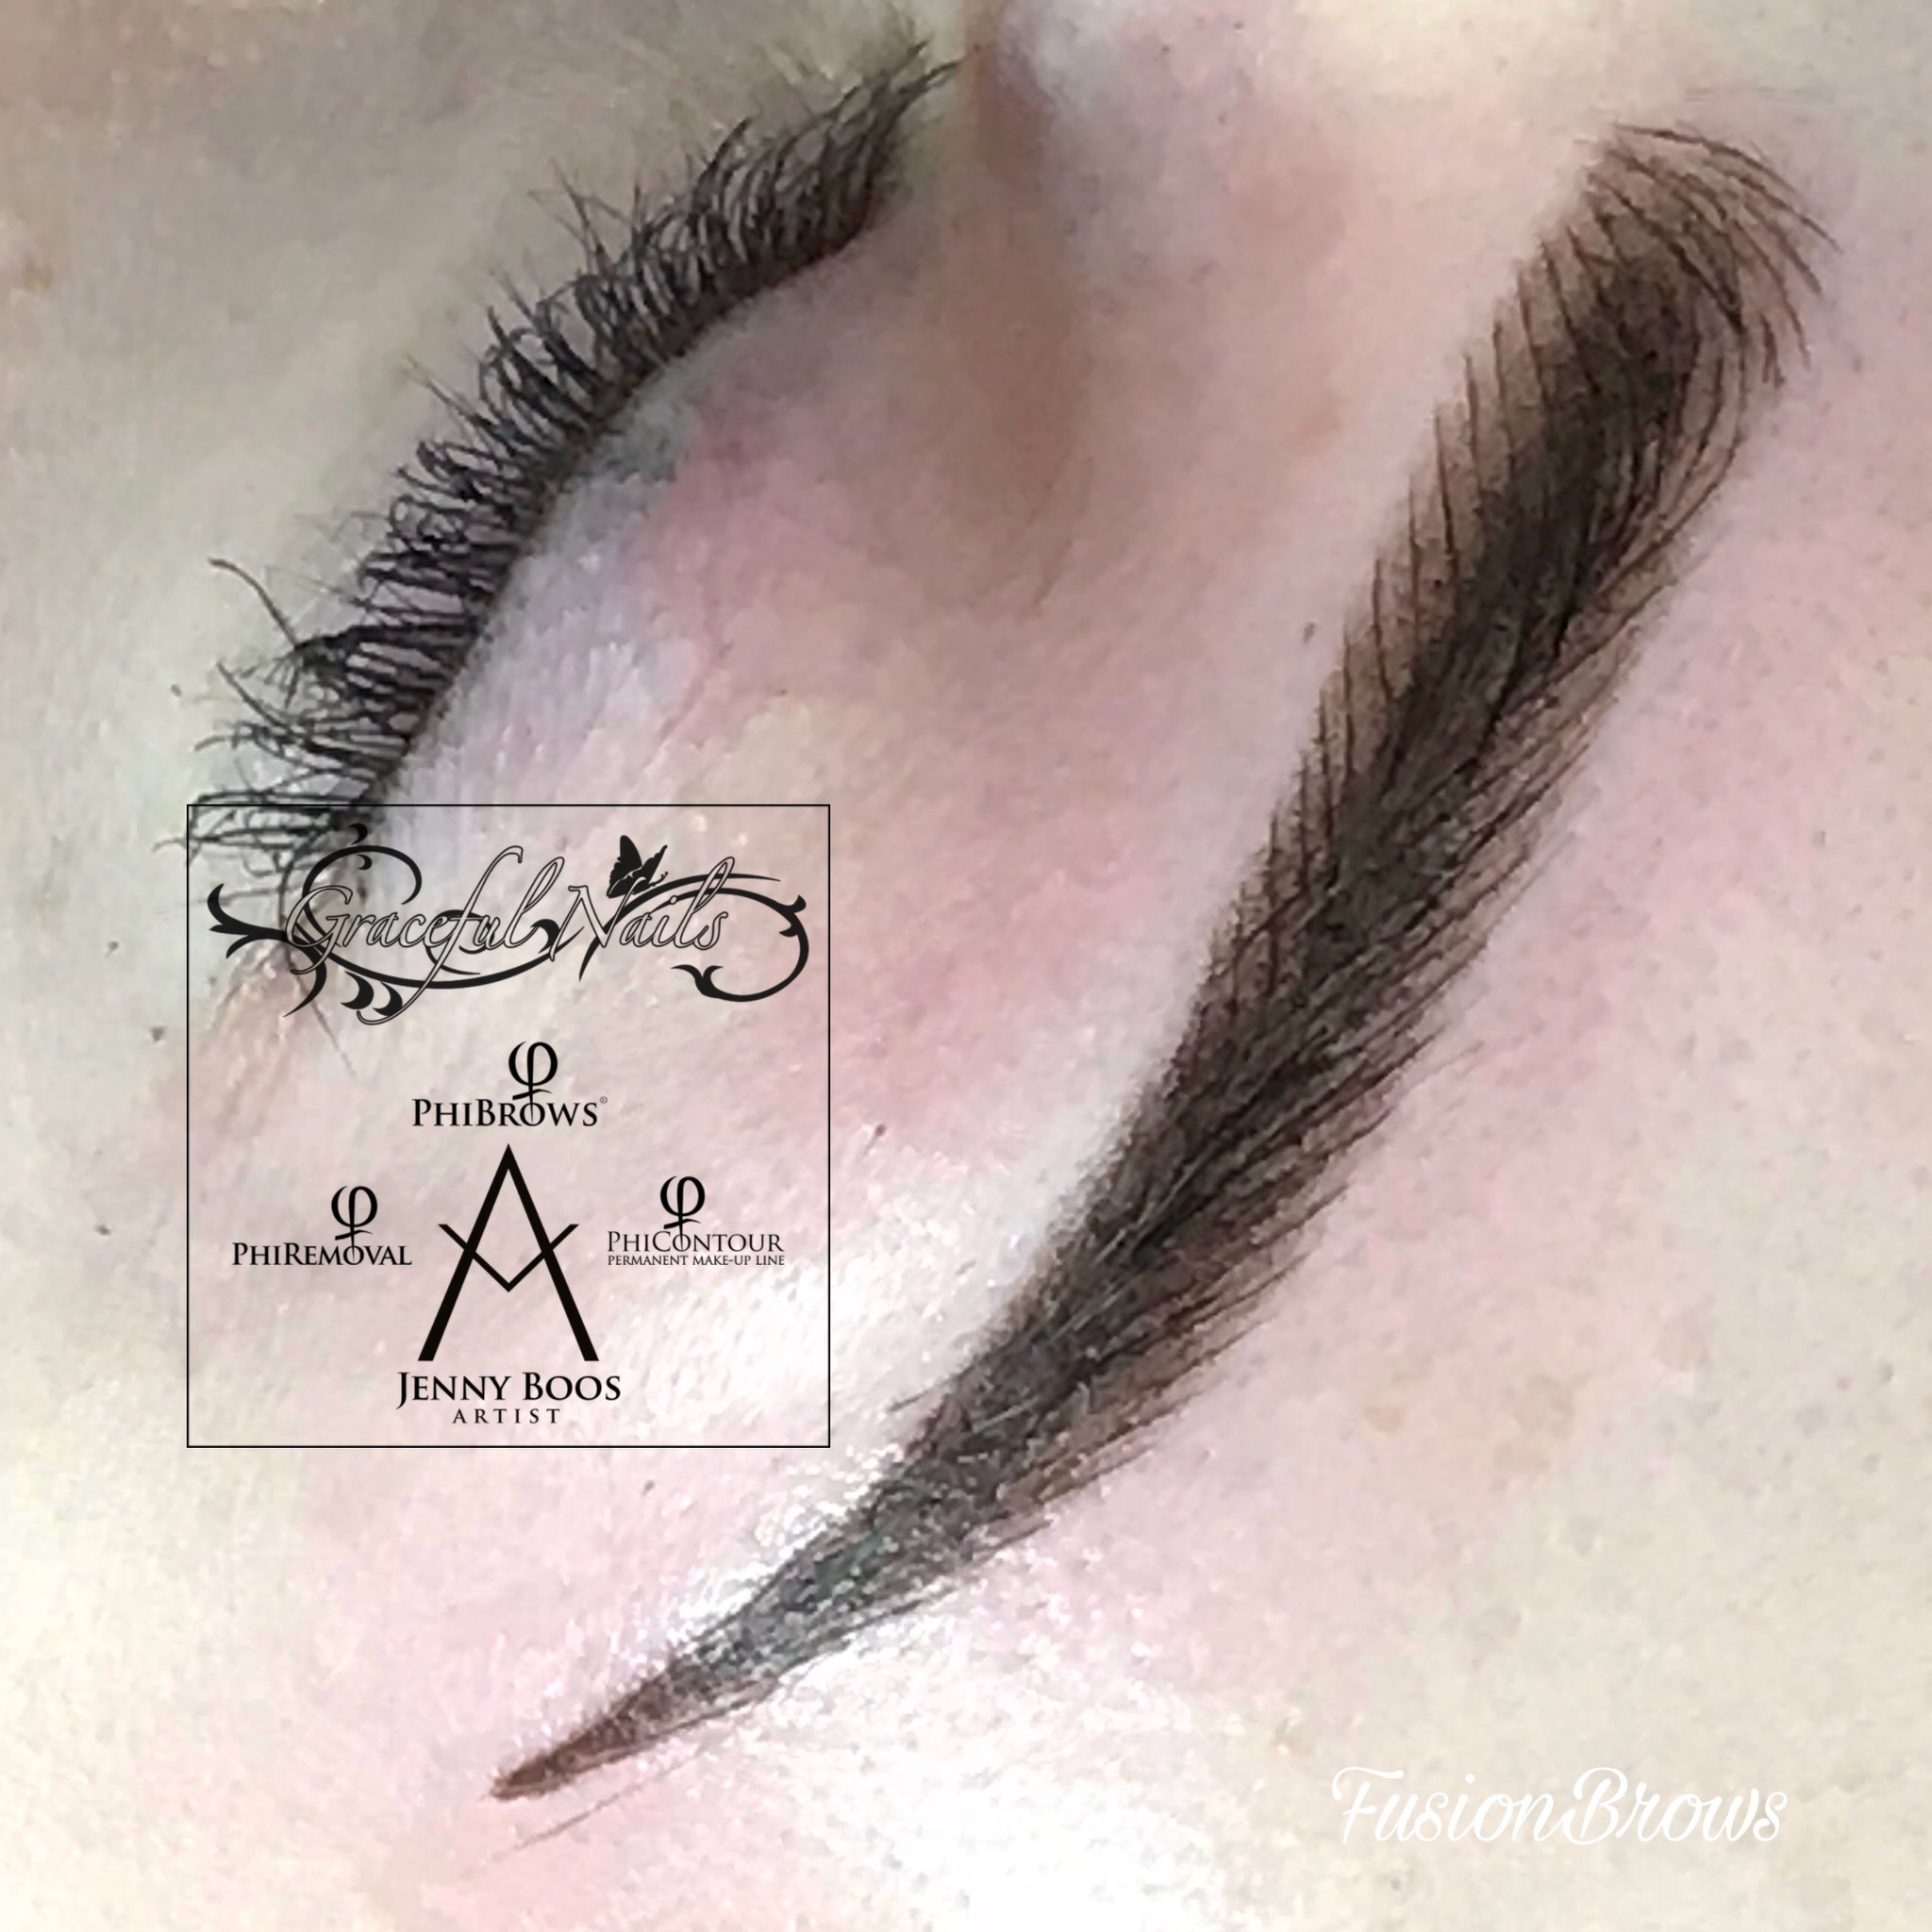 Fusion Brows - Augenbrauen